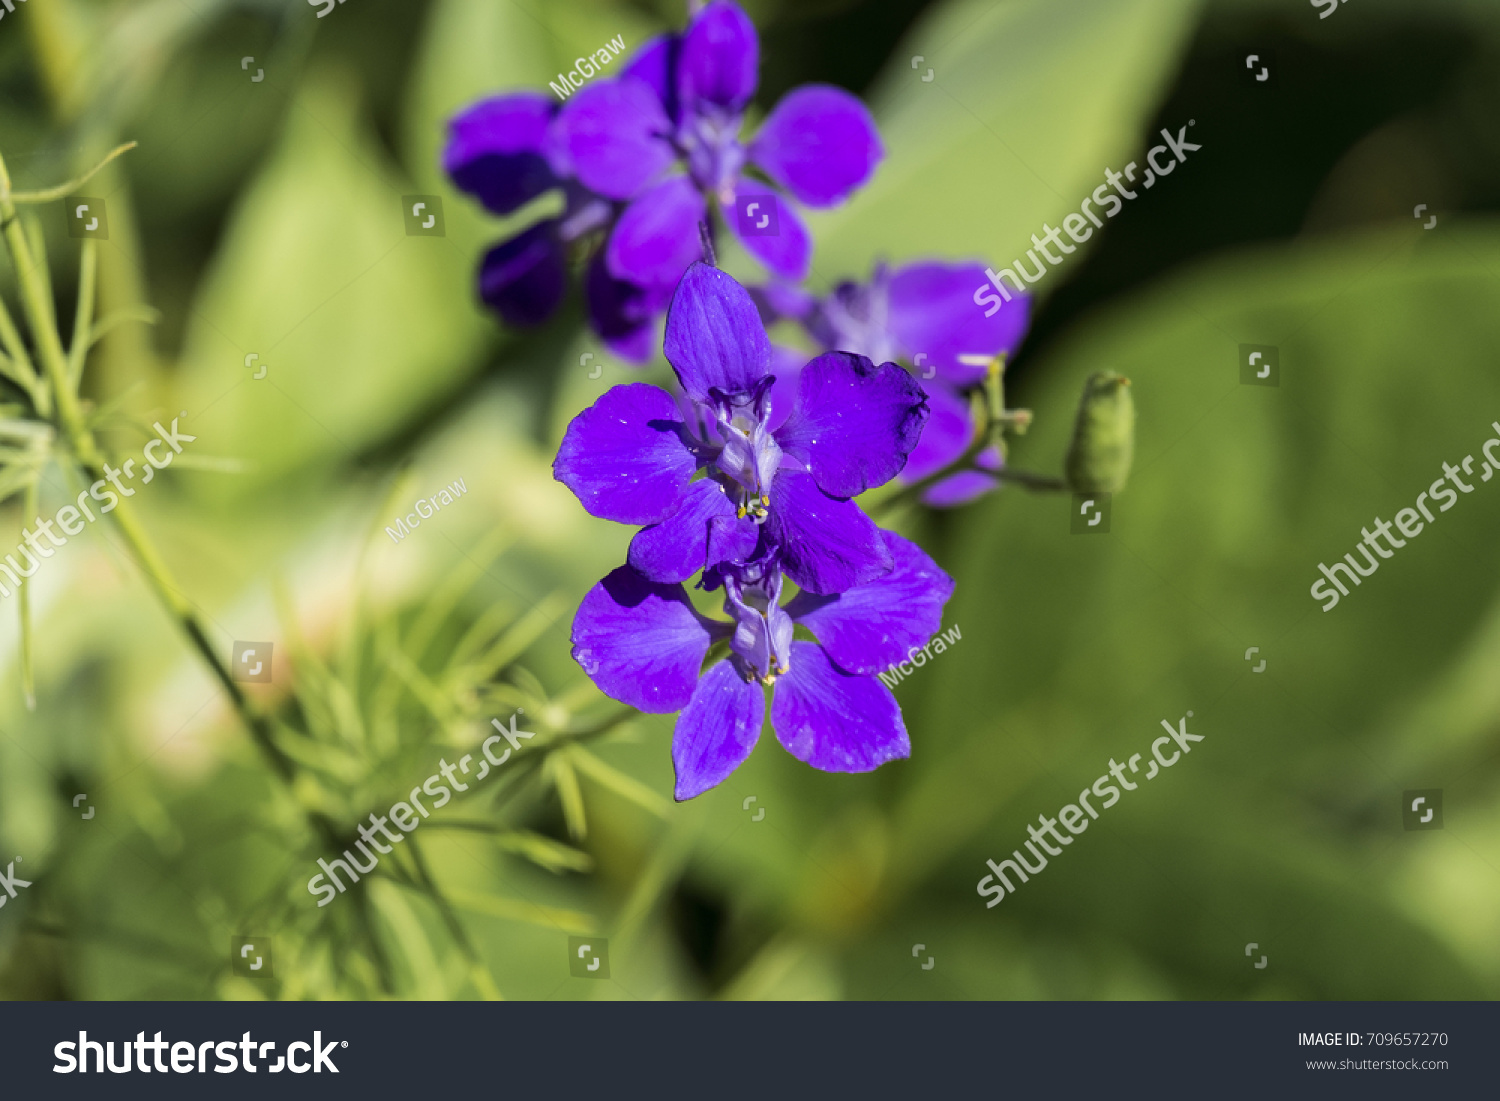 Purple Flowers And Small White Flowers With Bright Green Leaves